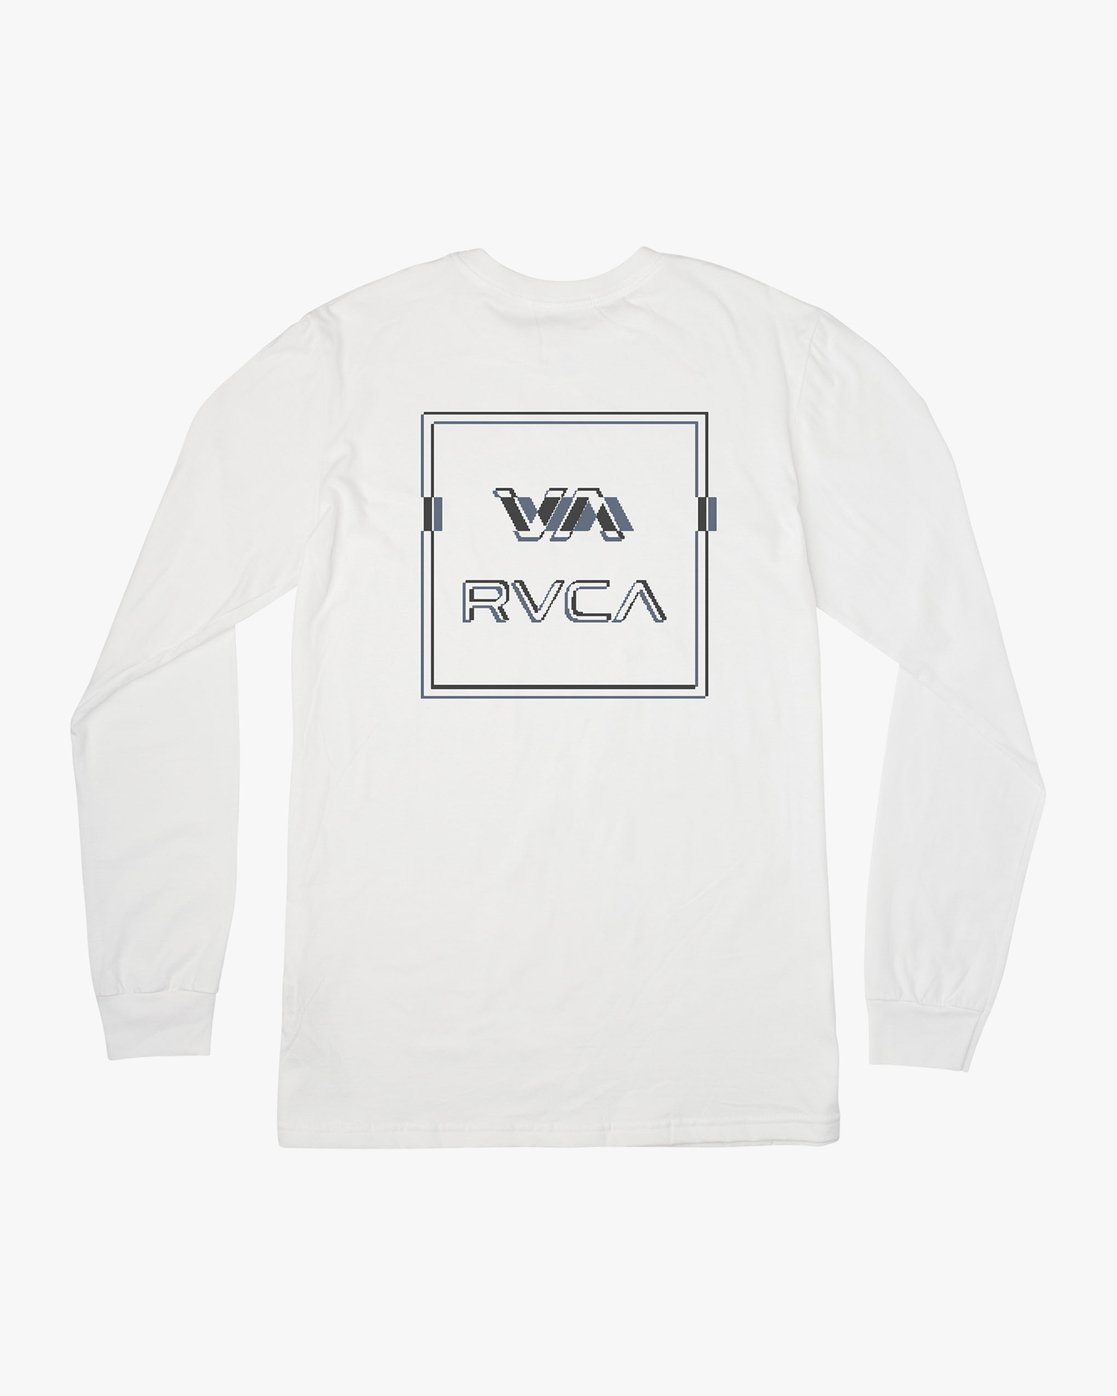 0 Big Glitch Long Sleeve T-Shirt White M451VRBG RVCA